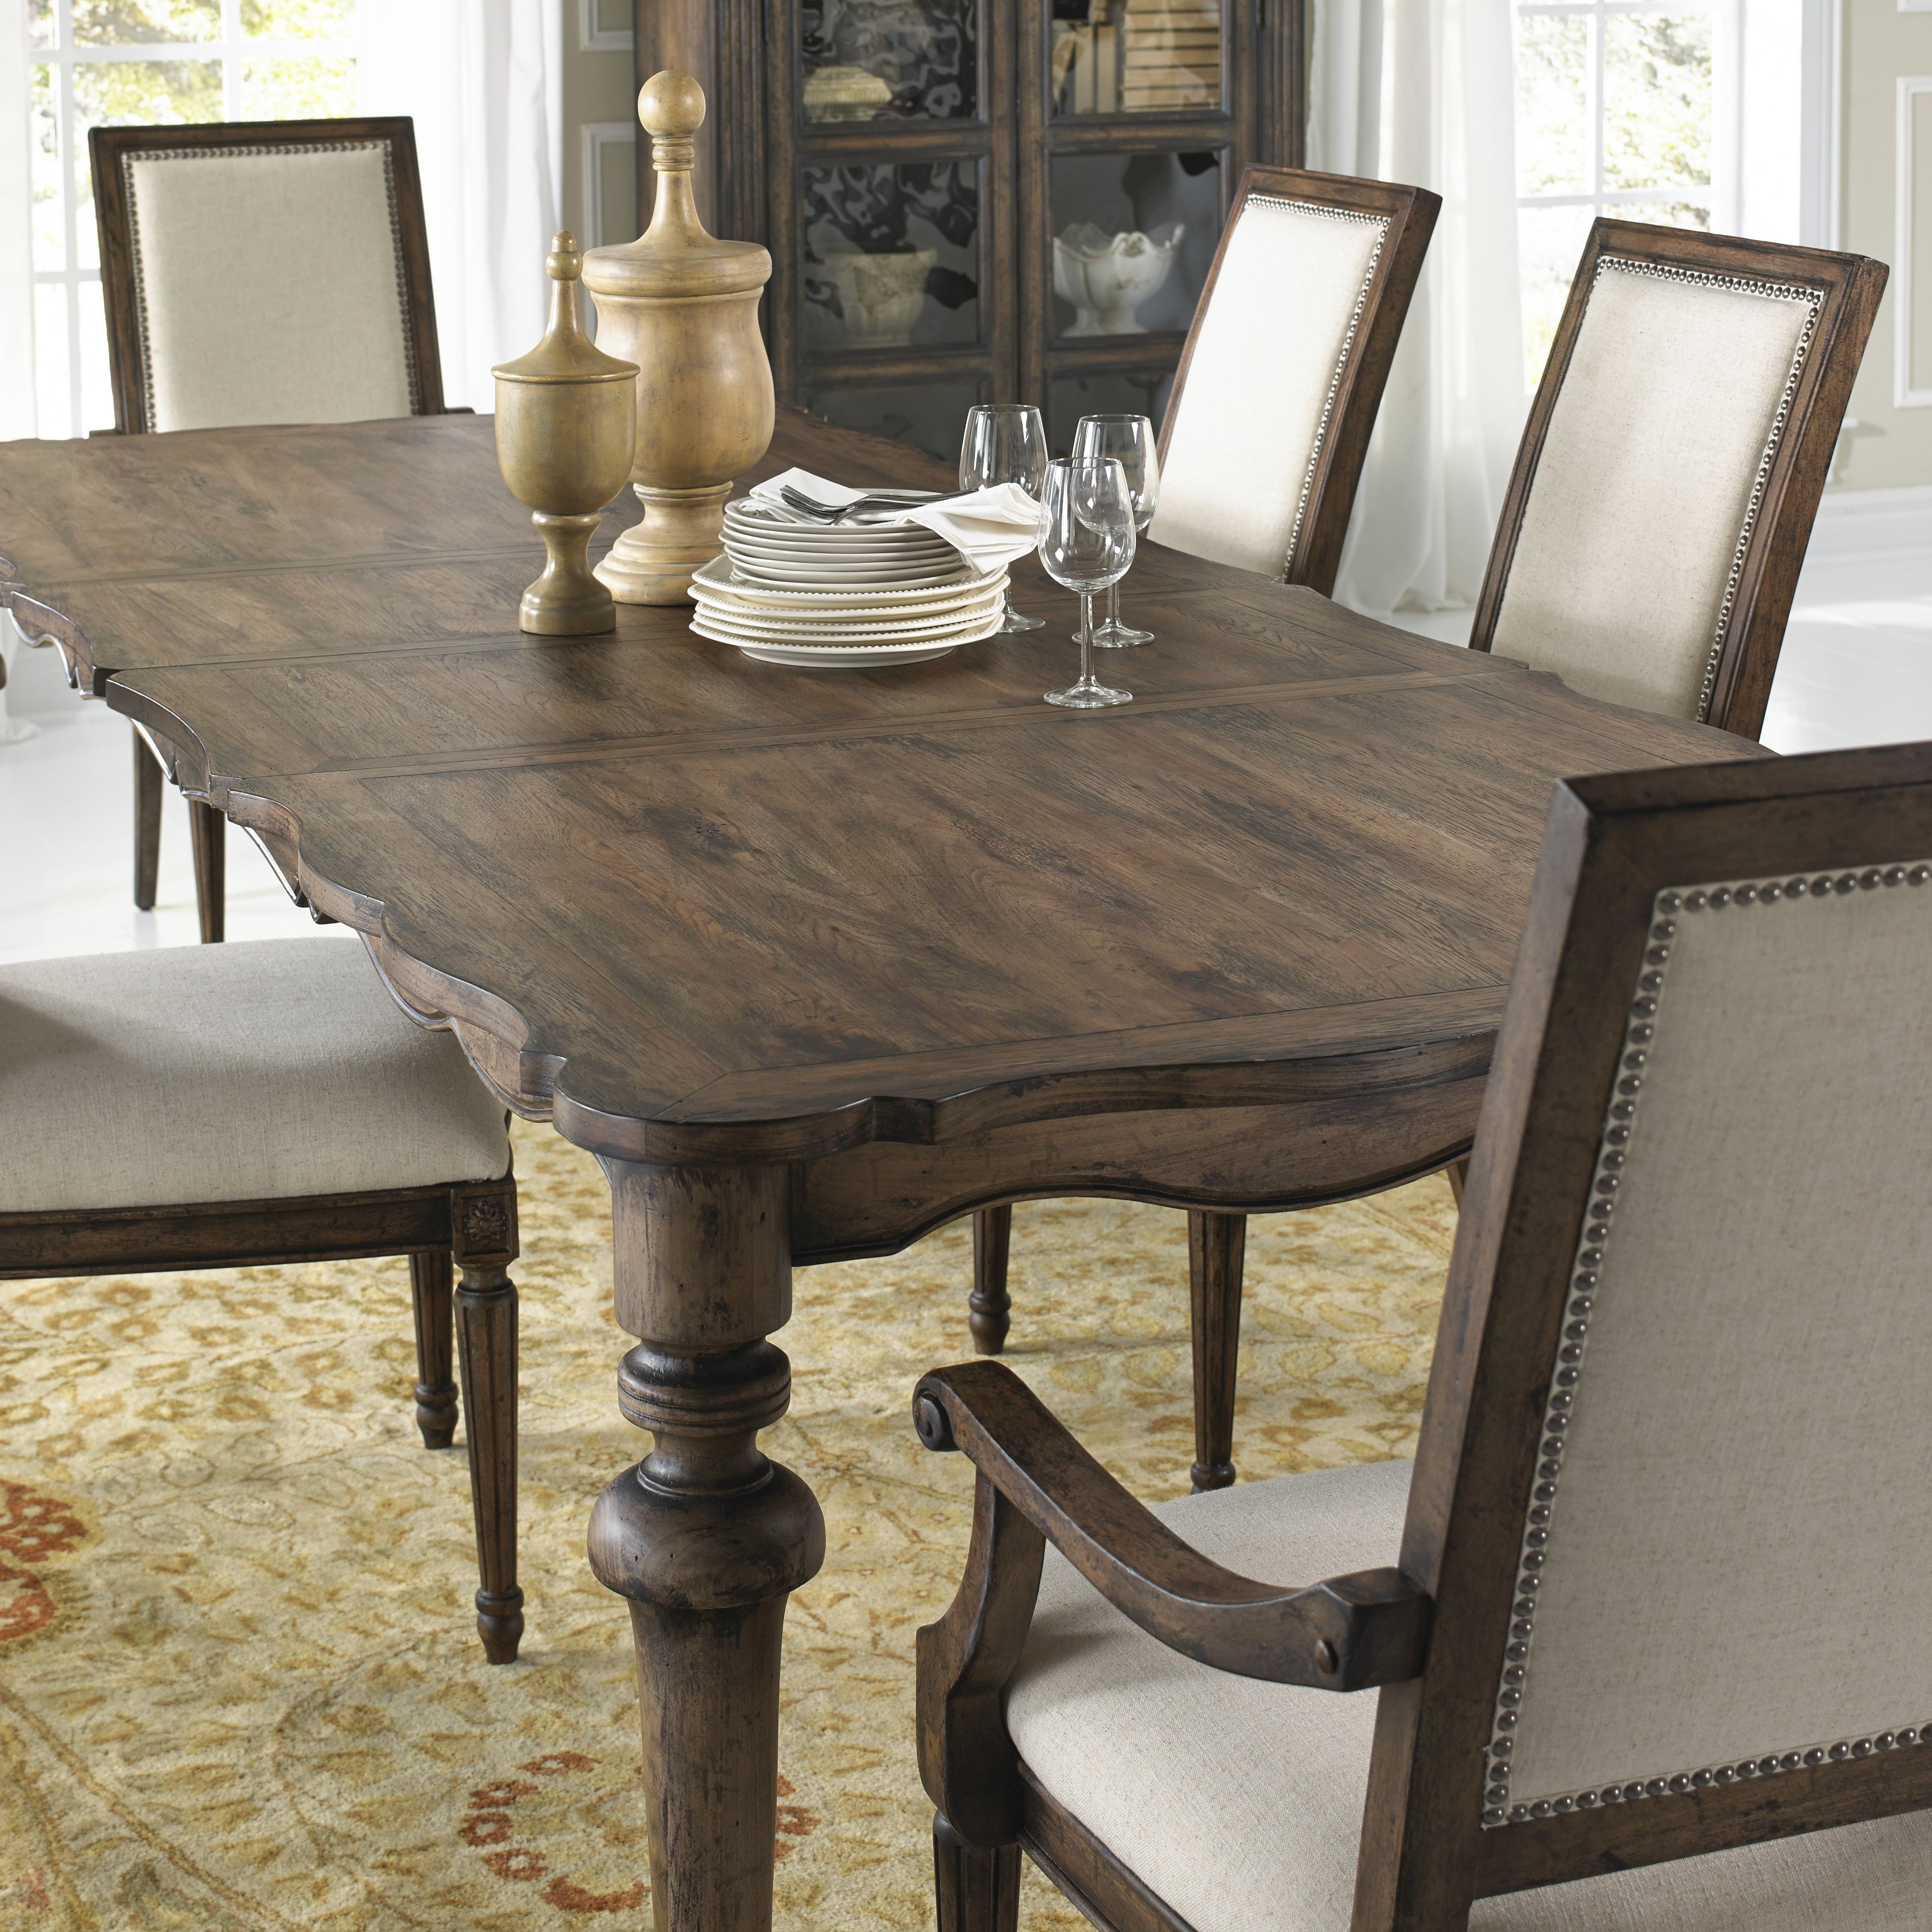 Dark Wood Dining Sets: The Dark Wood Grain Adds A Simple Elegance To This